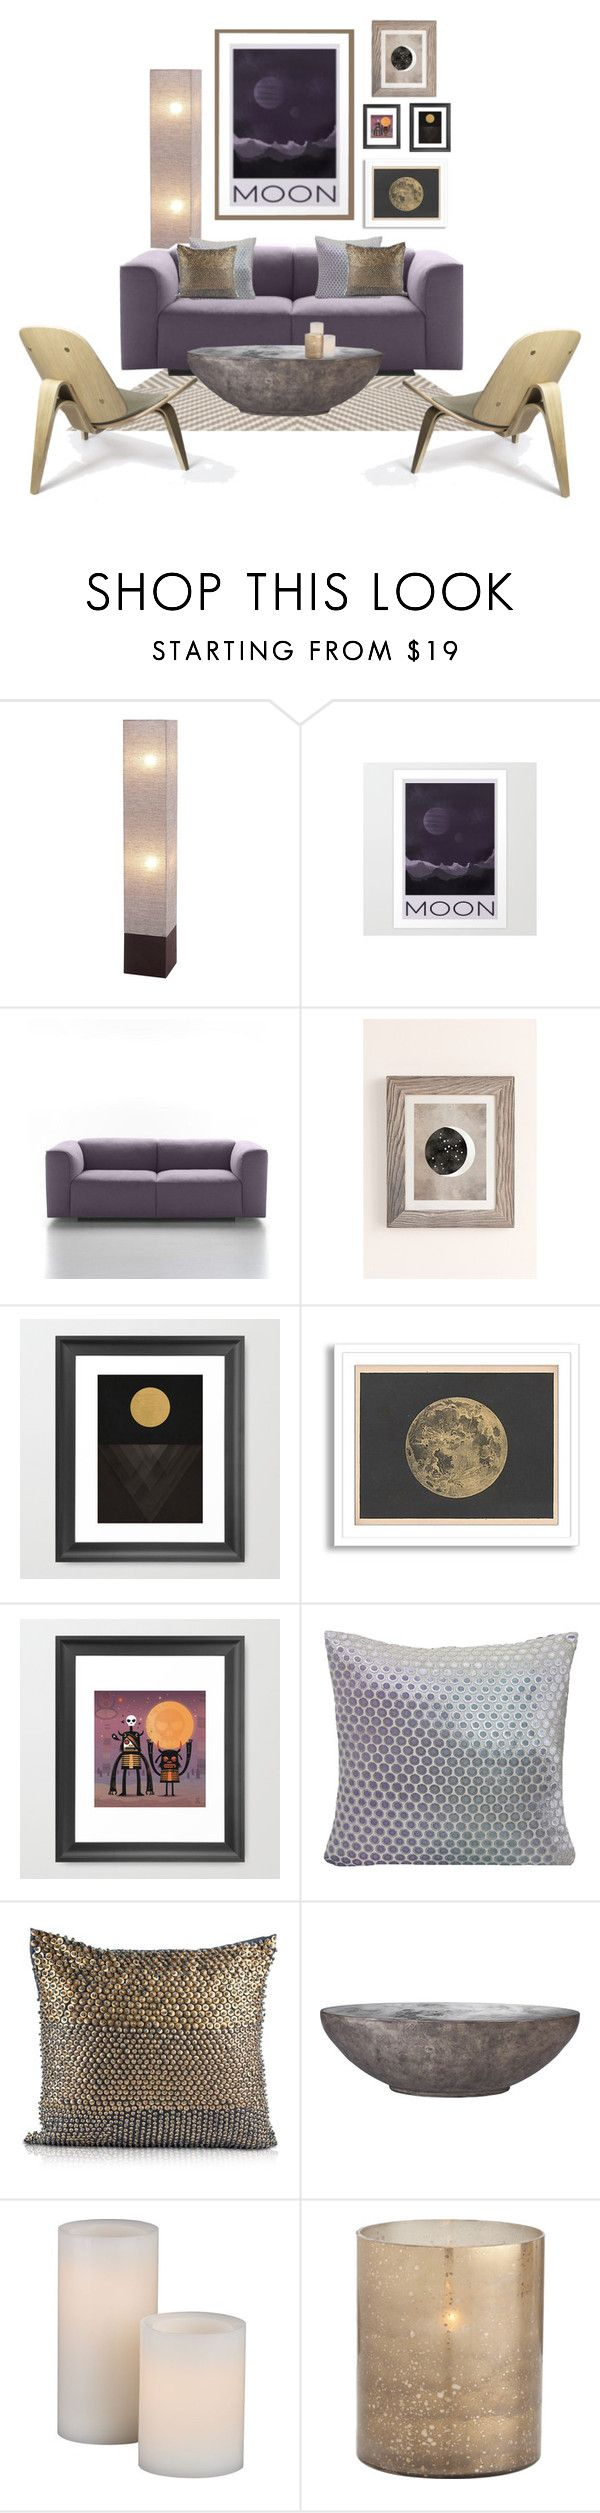 Moon by she-kills-monsters on Polyvore featuring interior, interiors, interior design, home, home decor, interior decorating, McGuire, Pyar & Co., Kevin O'Brien and Arteriors